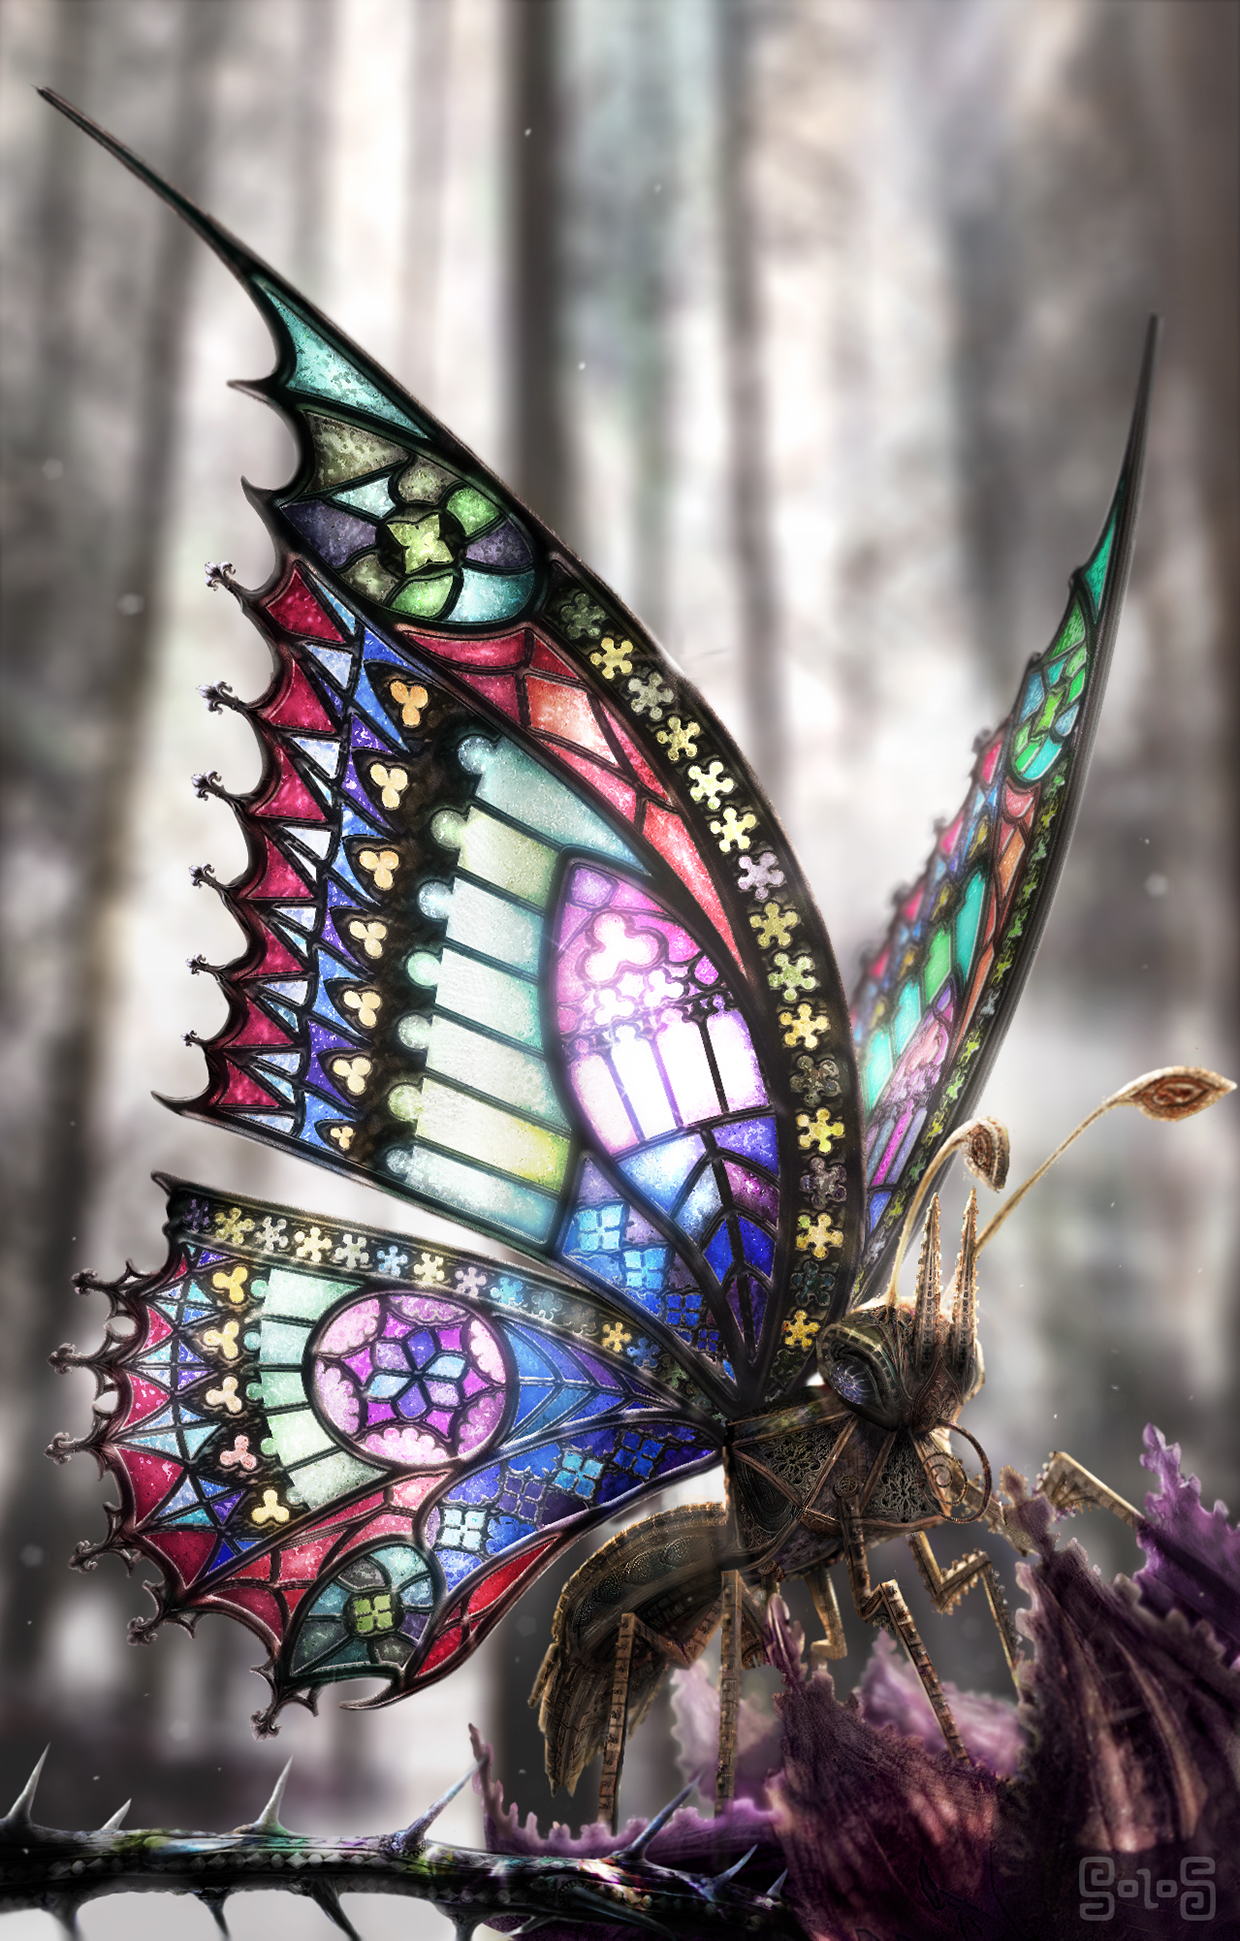 pin gothicbutterfly1440x900downloadfreewidescreenhd